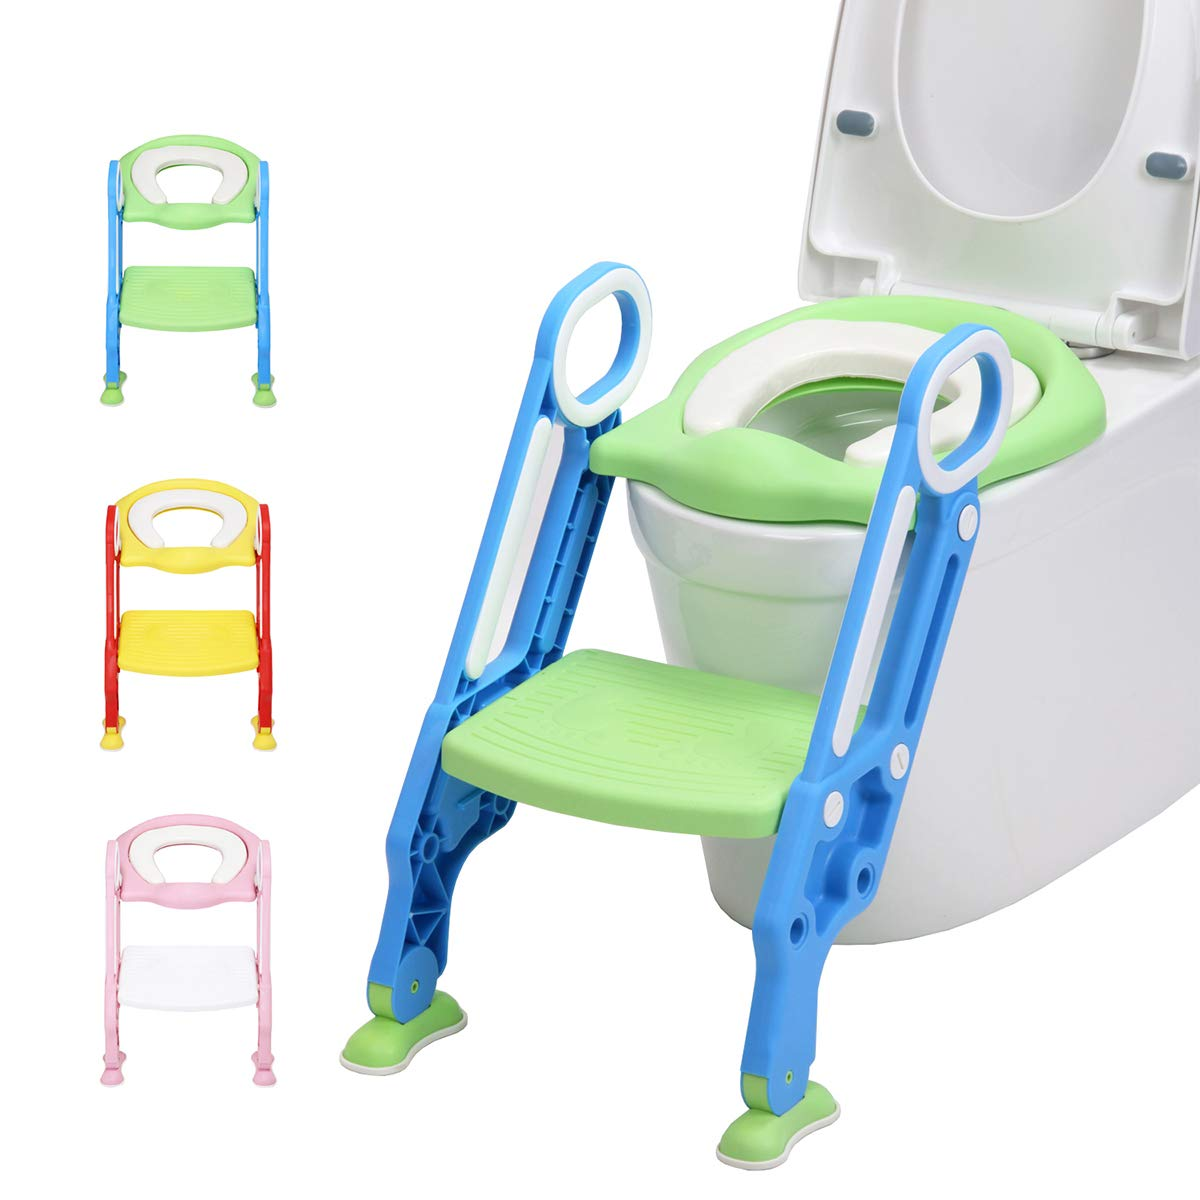 LANGXUN Potty Training Seat with Ladder for Boys and Girls,Baby Toddler Toilet Training Seat with Soft Toilet Seat and Sturdy Step Stool Ladder and Non-Slip Wide Step (Blue/Green)